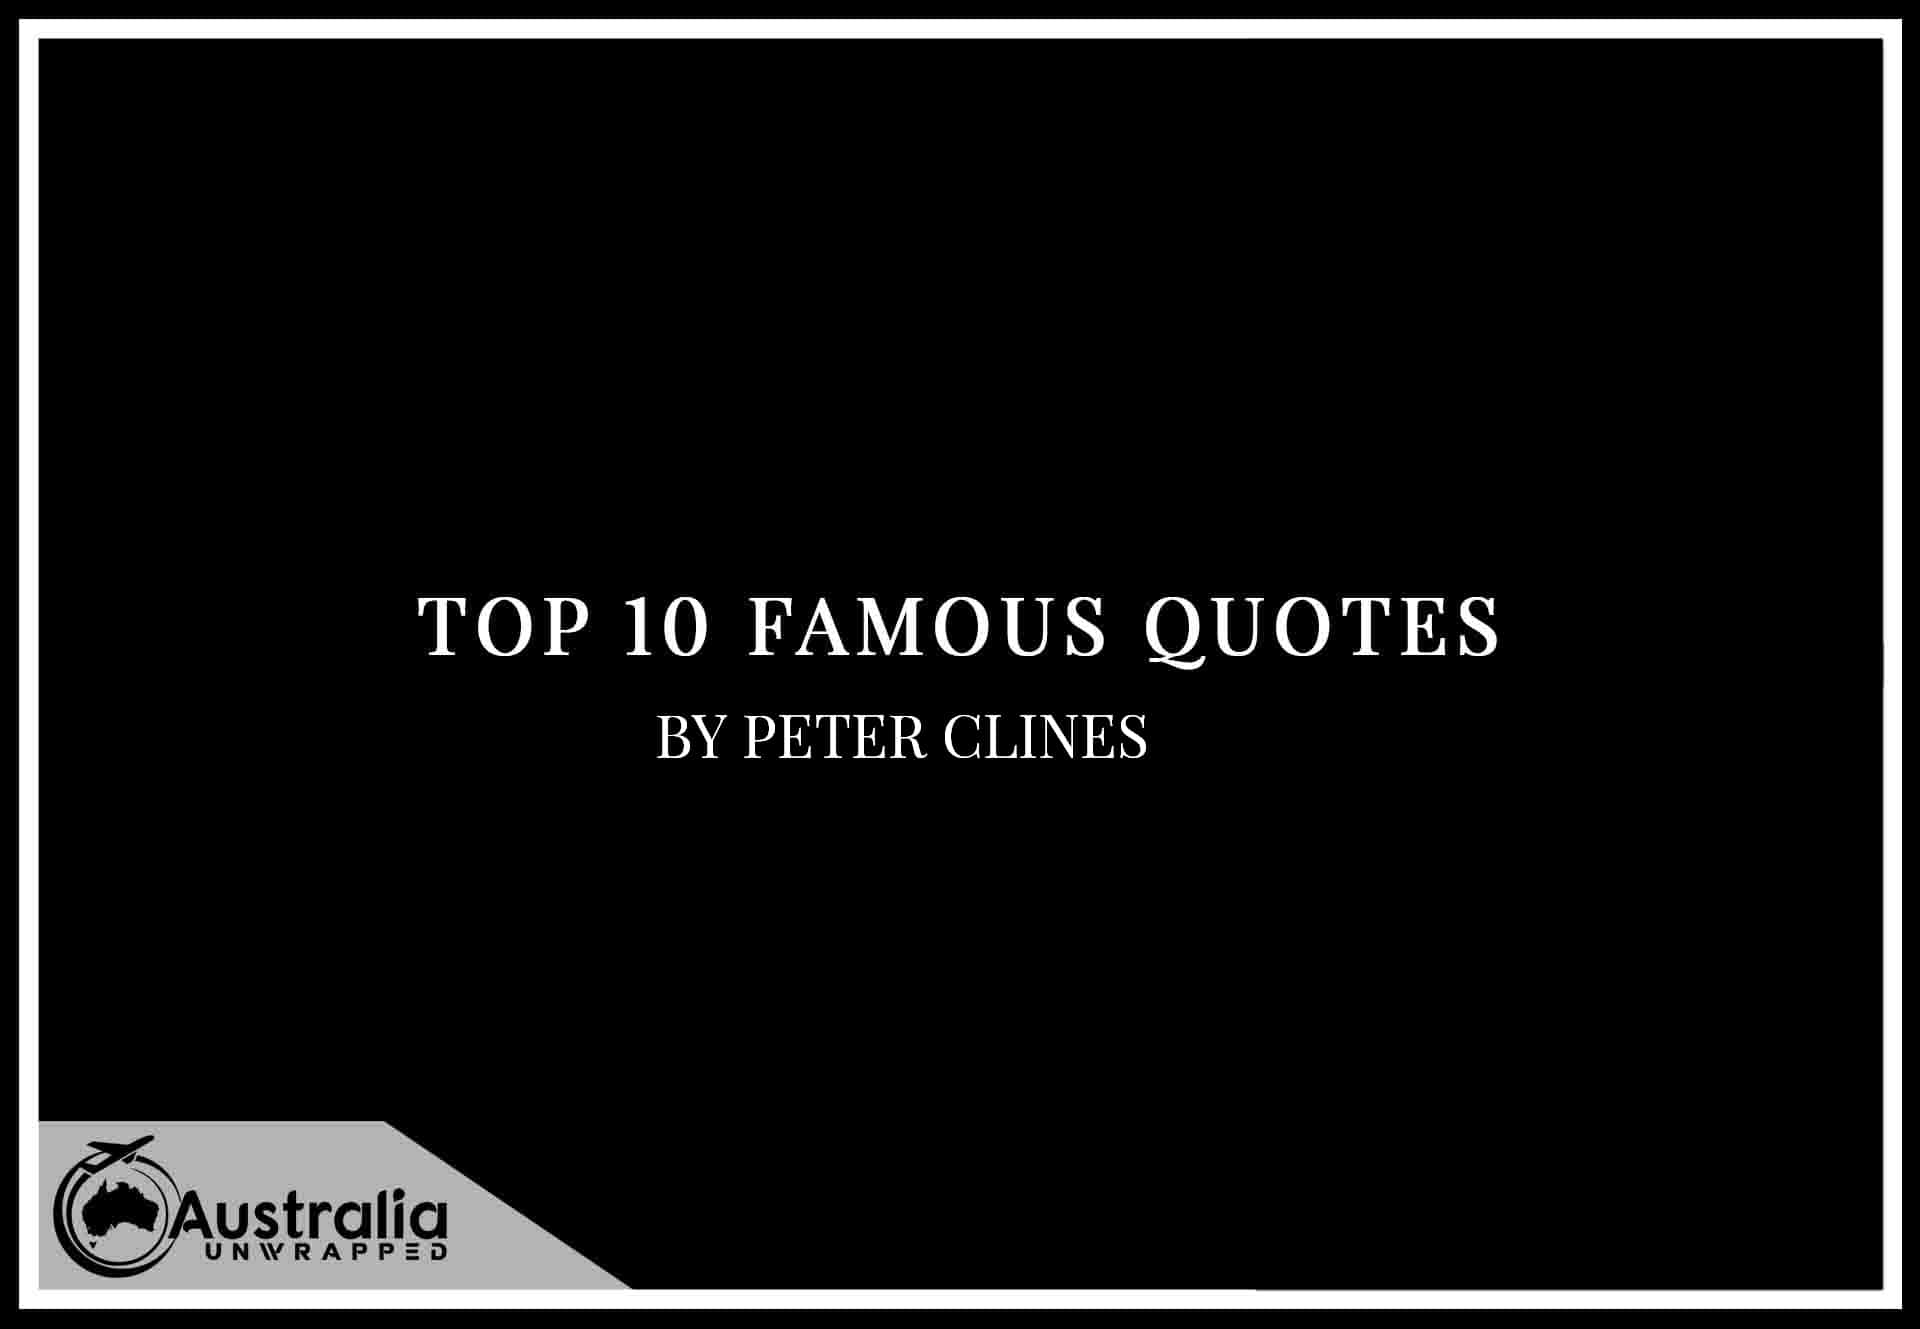 Top 10 Famous Quotes by Author Peter Clines